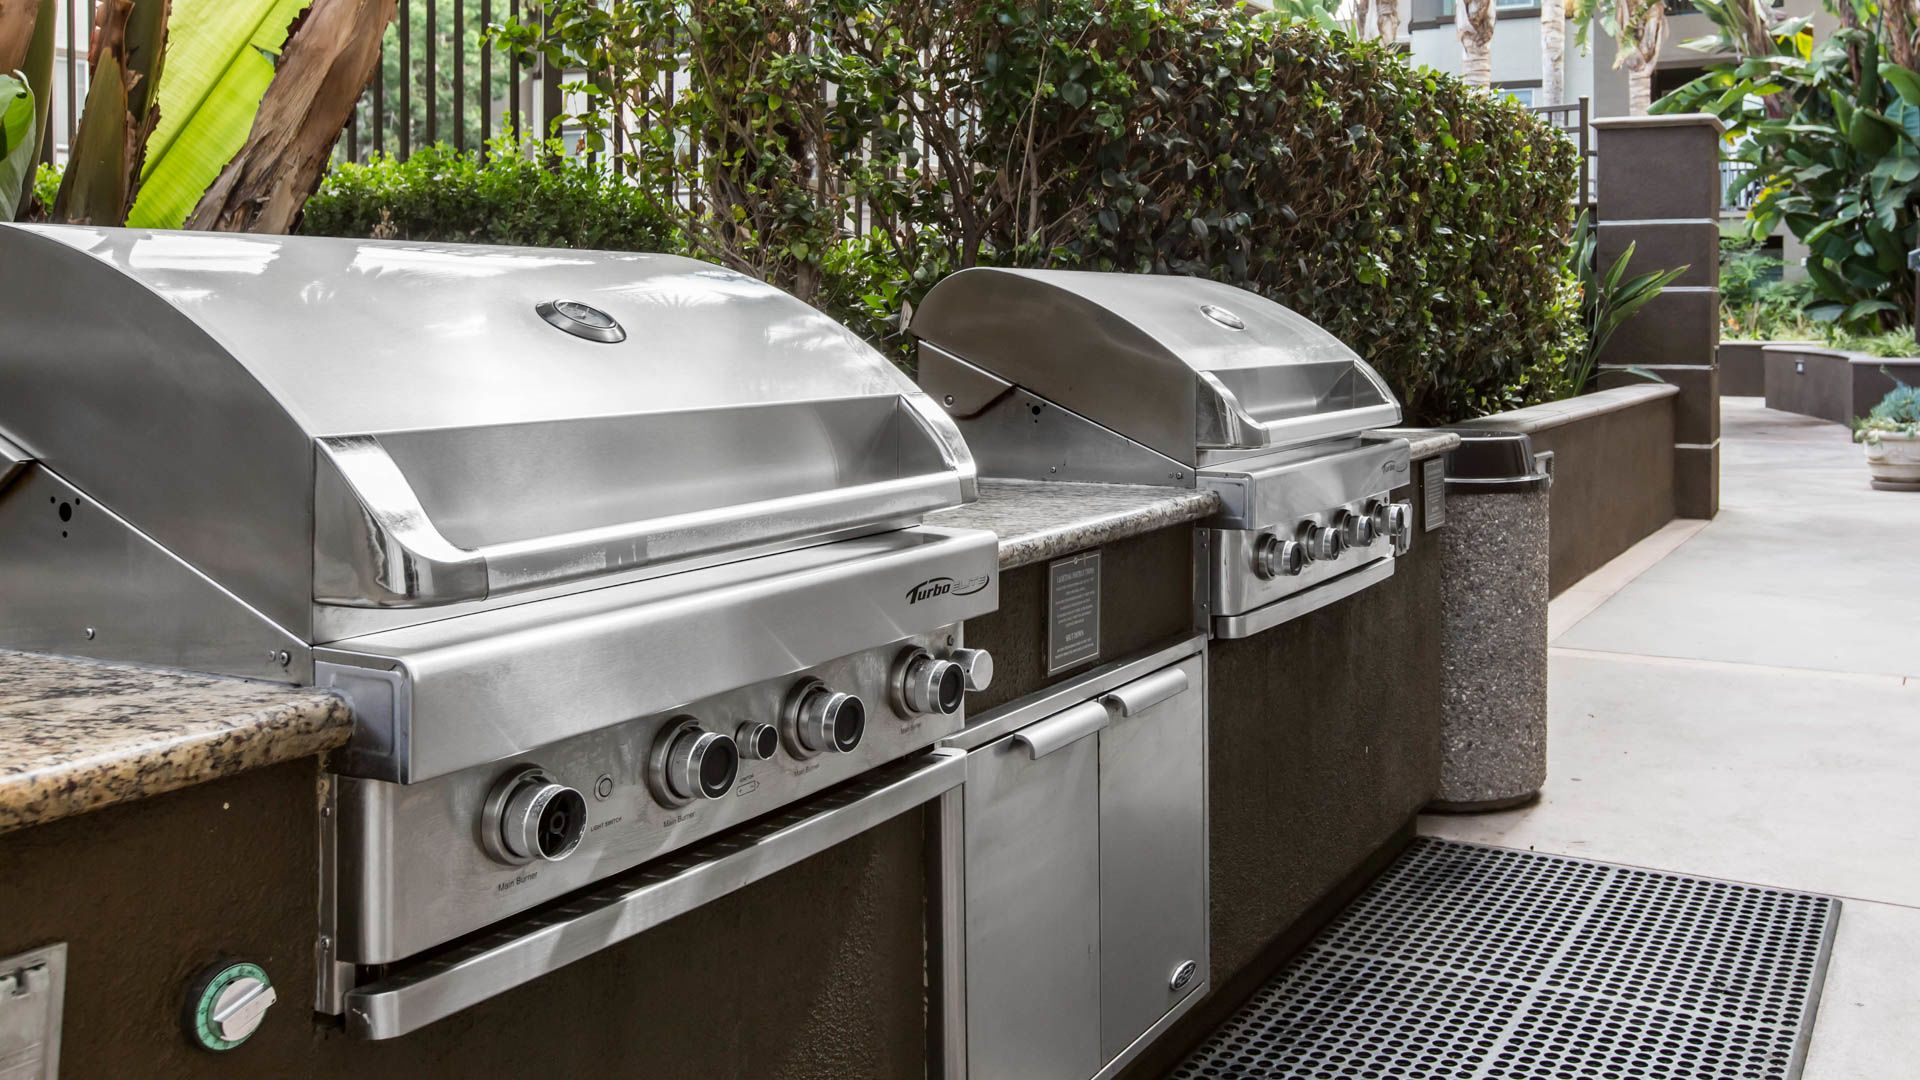 Kelvin Court Apartments - Grilling